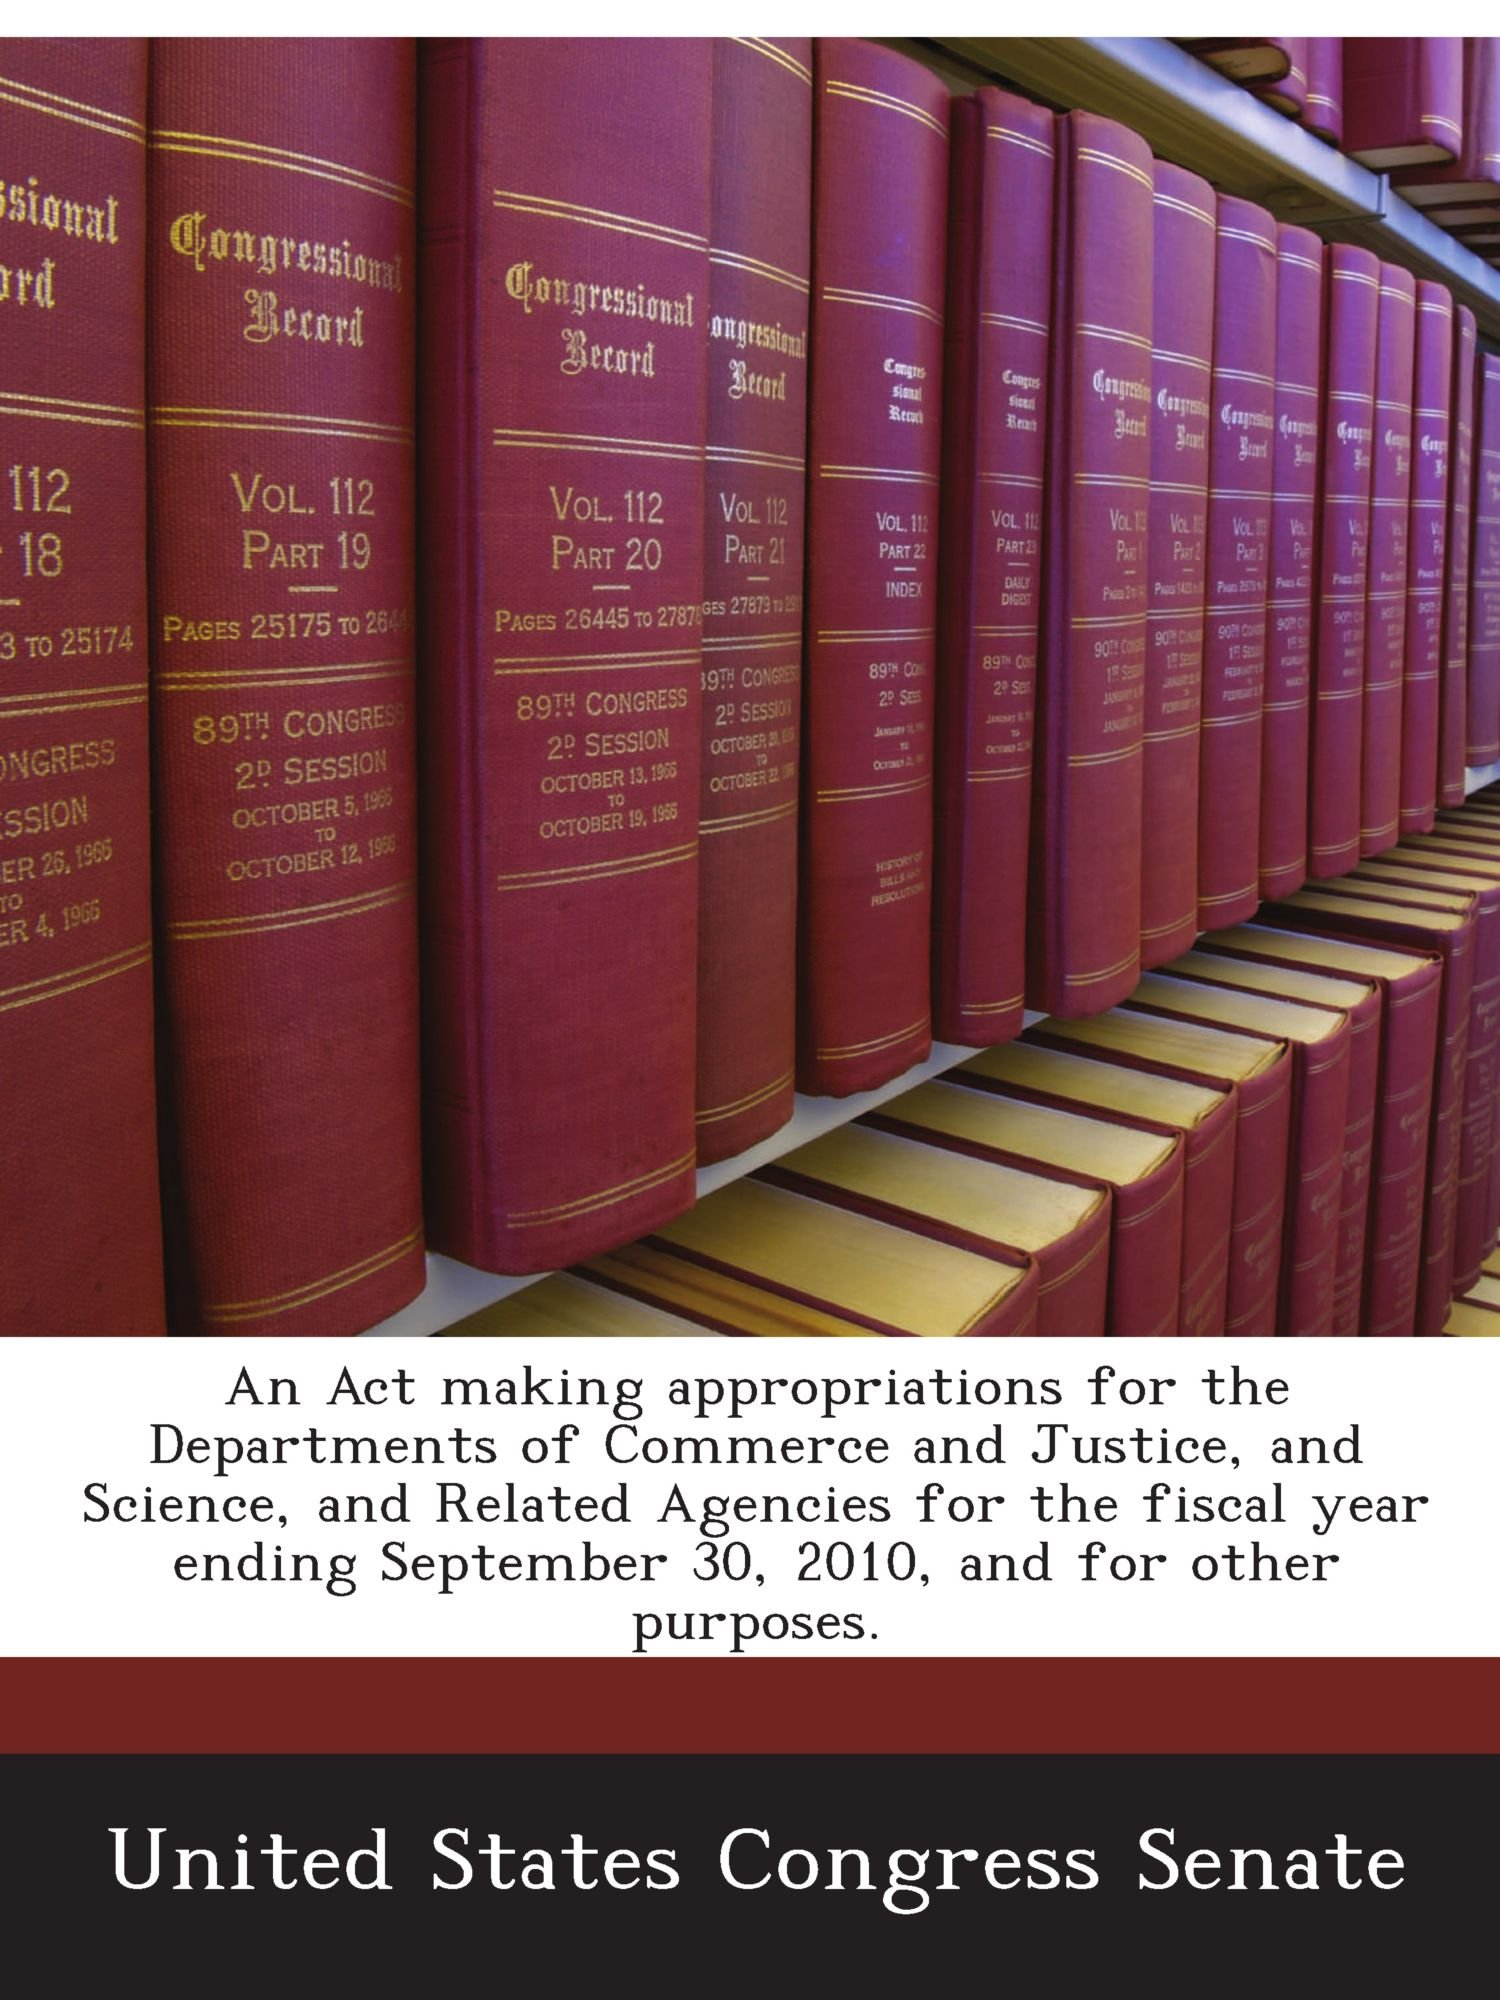 Download An Act making appropriations for the Departments of Commerce and Justice, and Science, and Related Agencies for the fiscal year ending September 30, 2010, and for other purposes. pdf